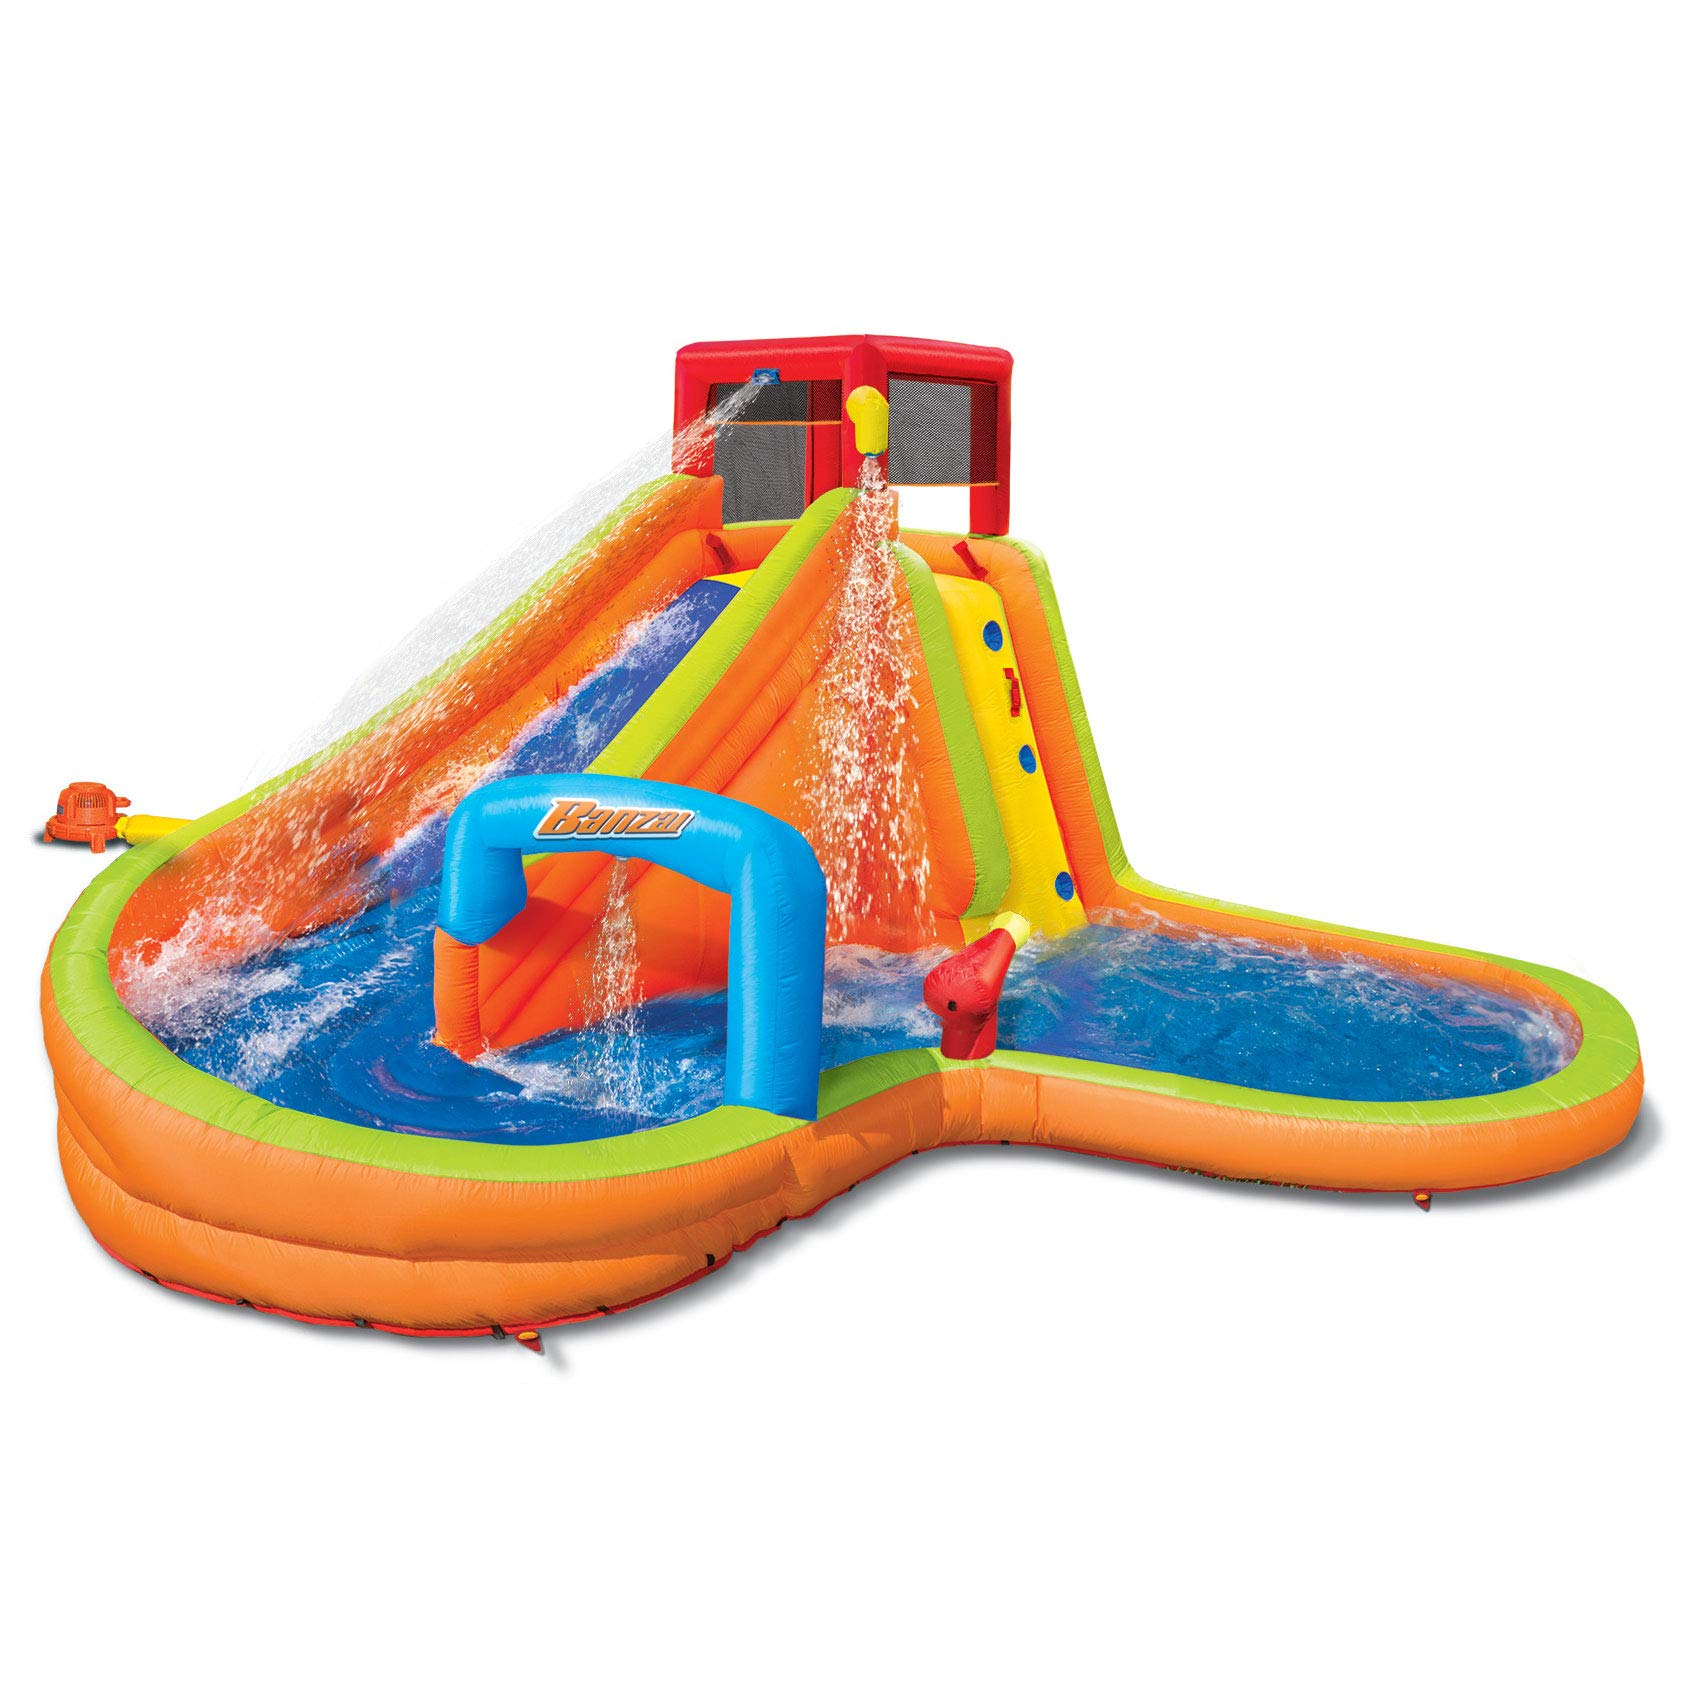 BANZAI Lazy River Inflatable Outdoor Adventure Water Park Slide and Splash Pool by BANZAI (Image #1)